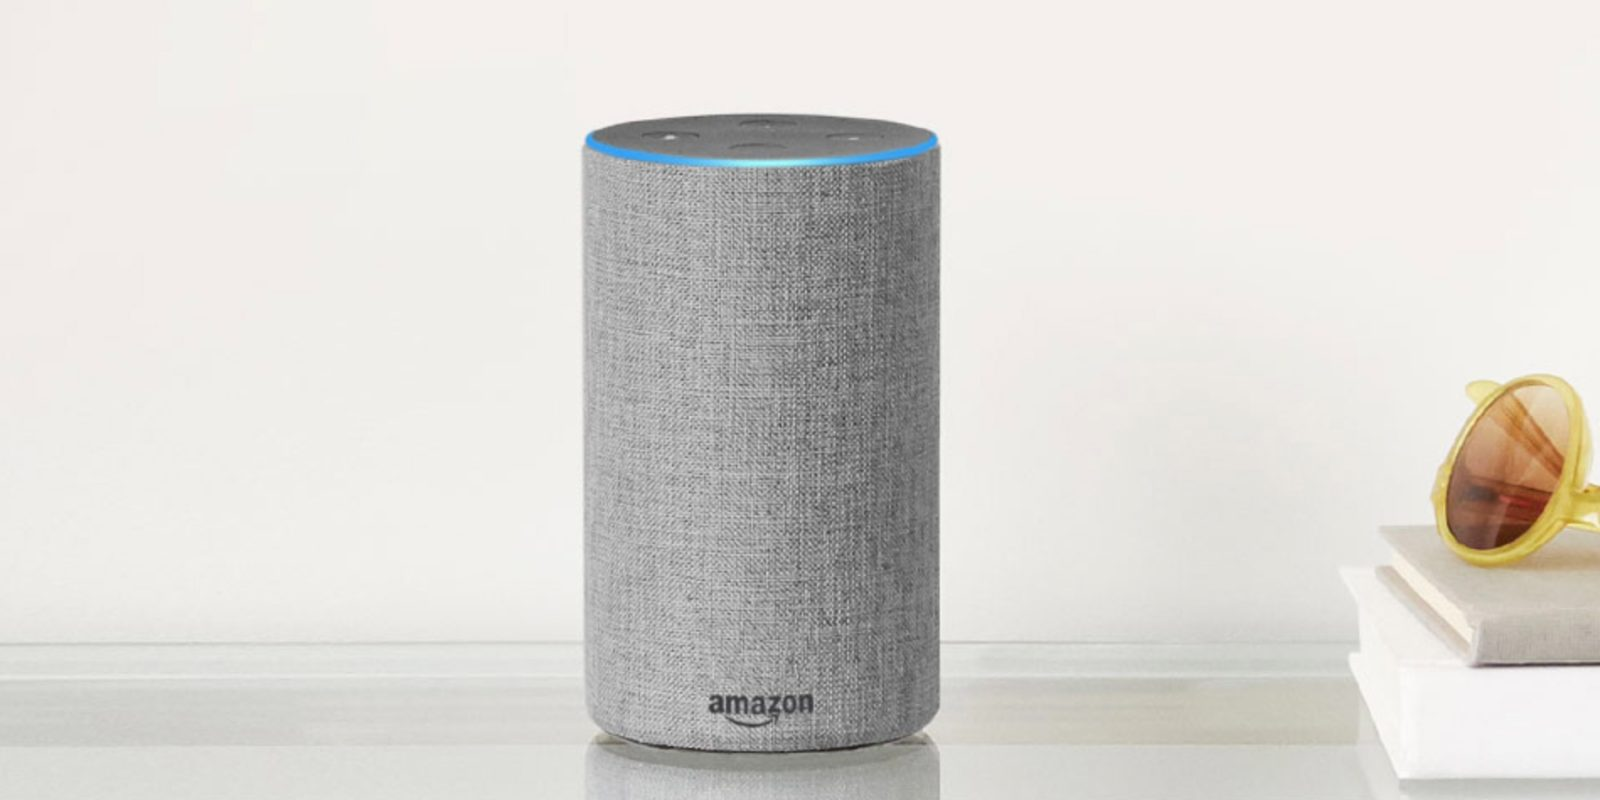 Slash 50% off the 2nd Gen. Echo at a new Amazon low of $50 in today's Gold Box